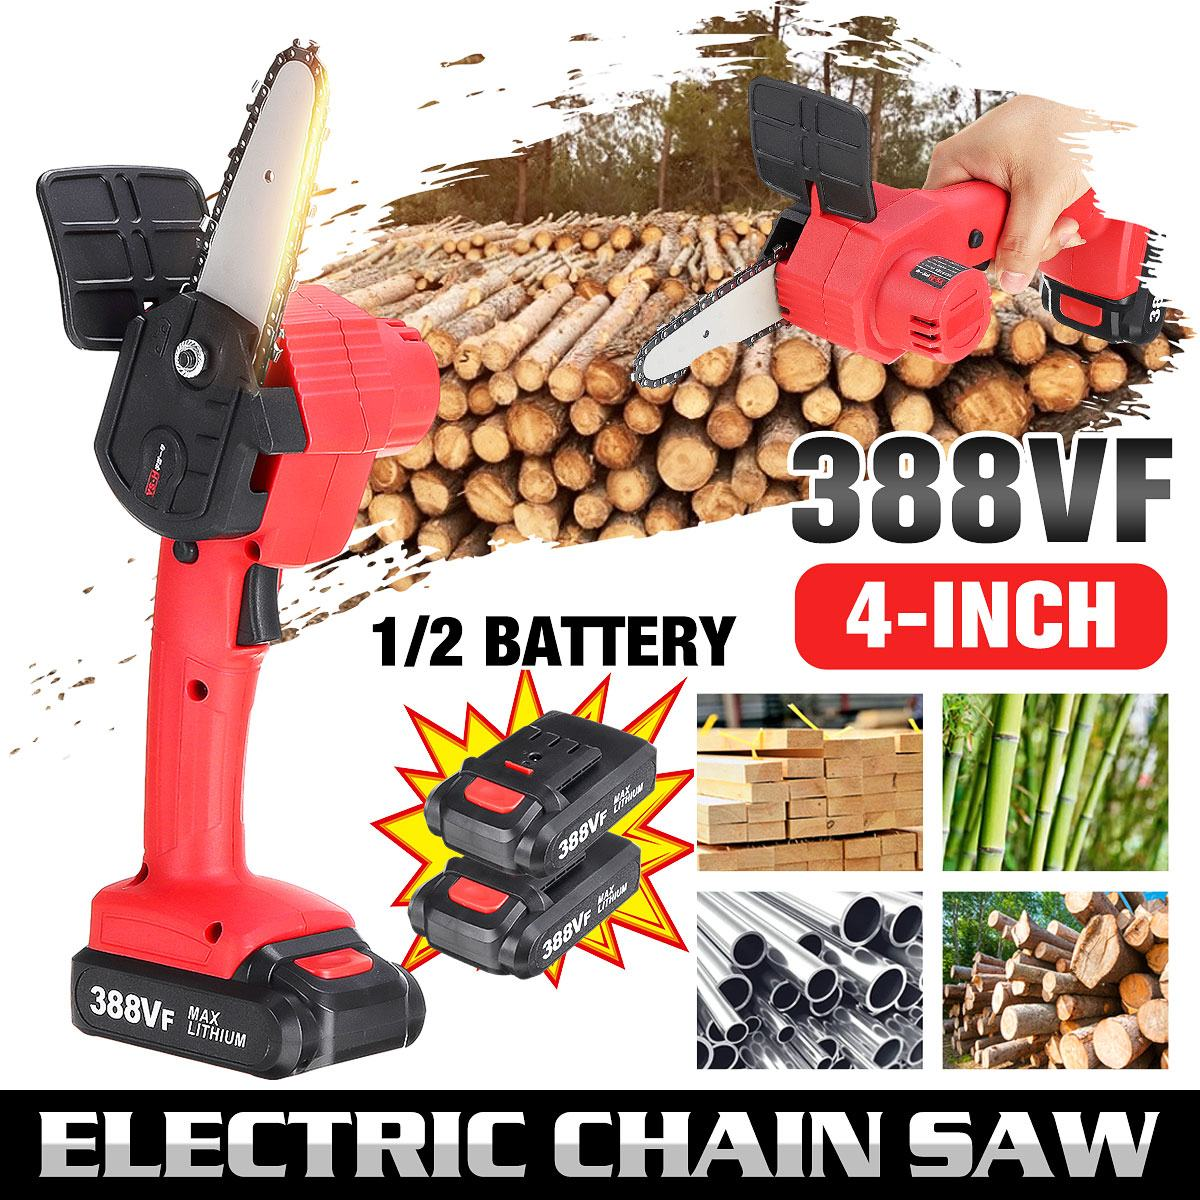 6 inch 1200w mini electric chain saw with battery indicator 128vf 388vf rechargeable woodworking tool for makita 18v battery 4 Inch 388VF 21V Mini Electric Chain Saw Mini Pruning Saw Chain Saws Rechargeable Woodworking Tool With 1/2 Lithium Battery